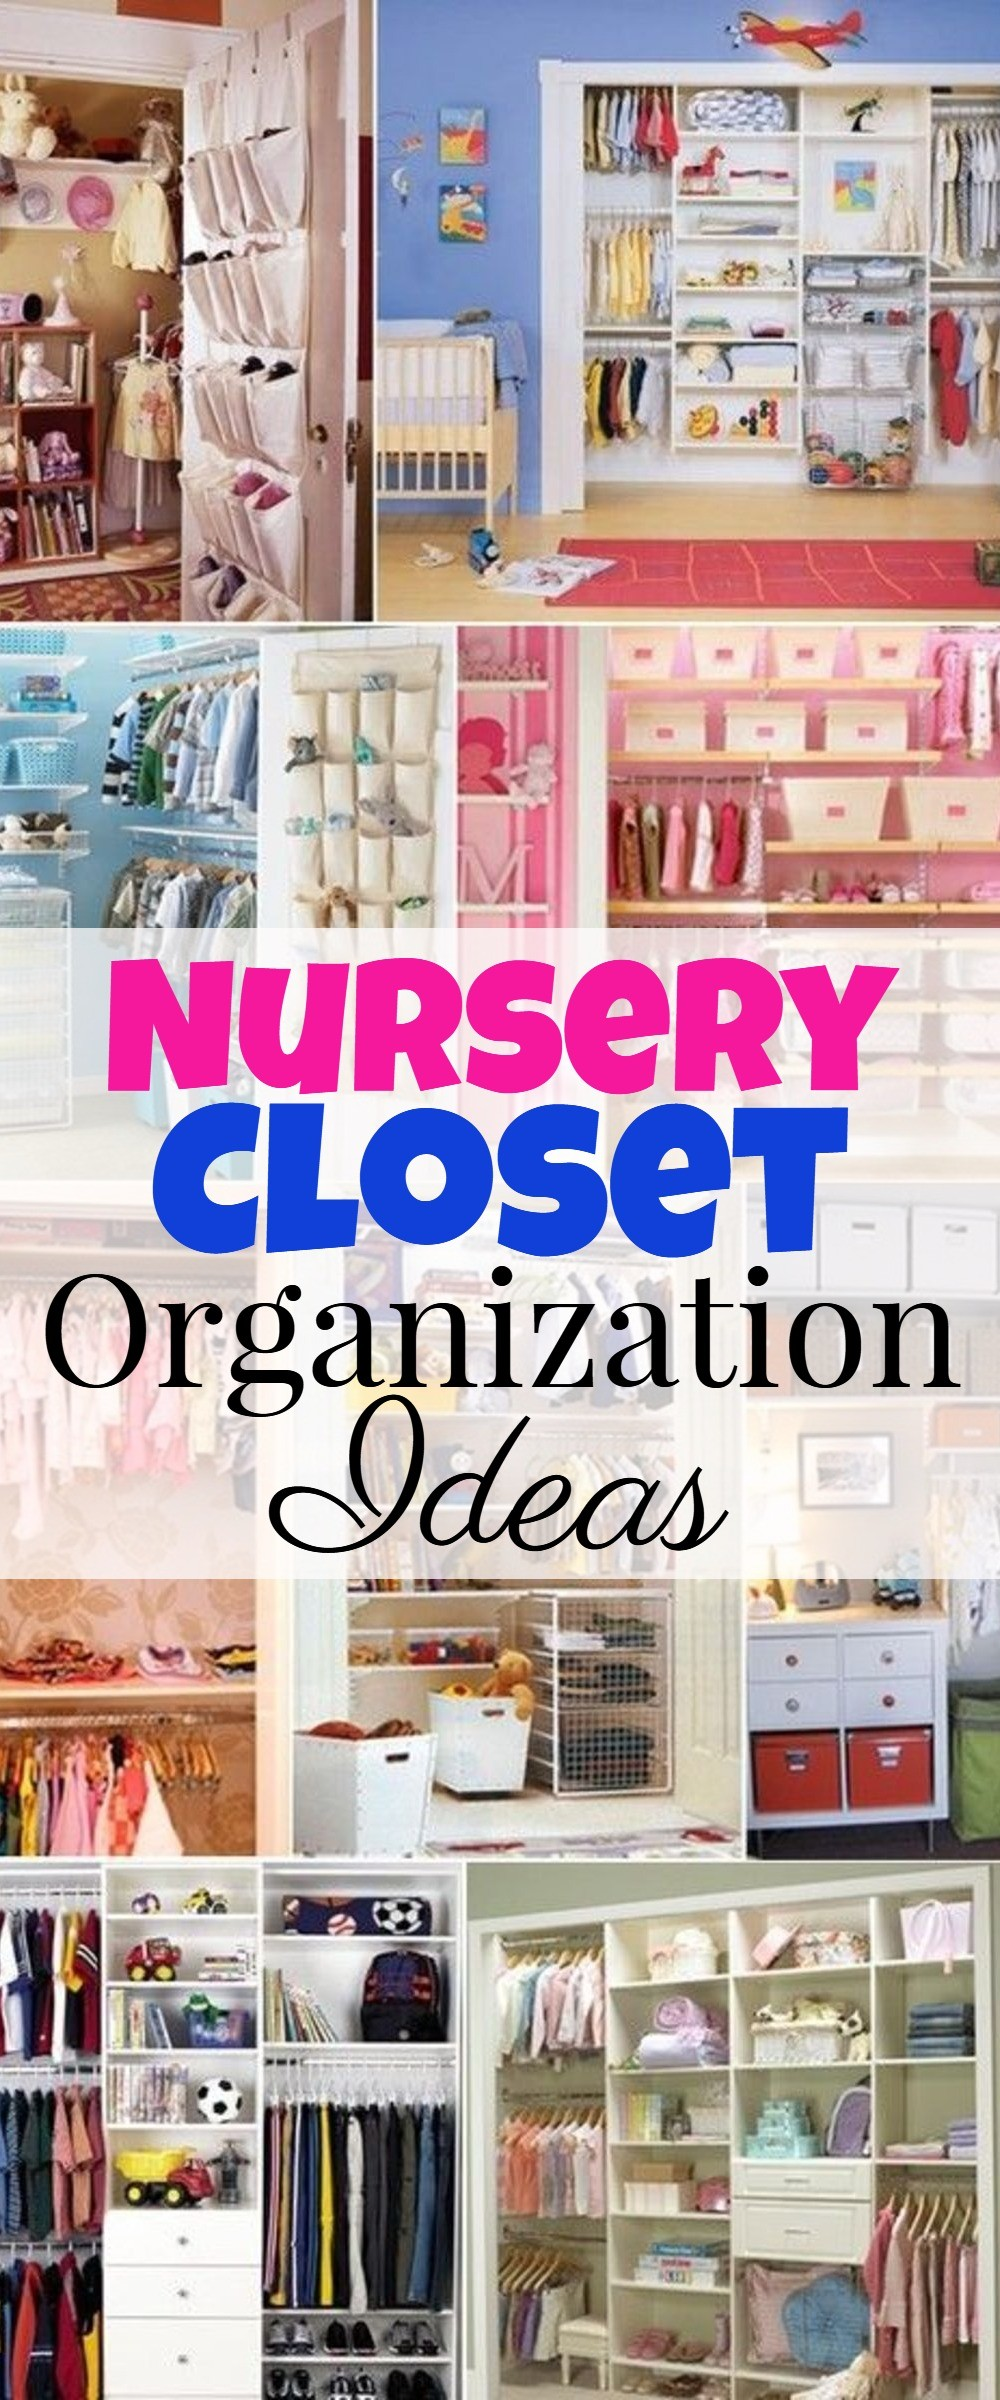 Nursery closet organization tips and ideas - great hacks, DIY ideas, and storage tips for organizaing the baby room closet. Great ideas for big and small closets.